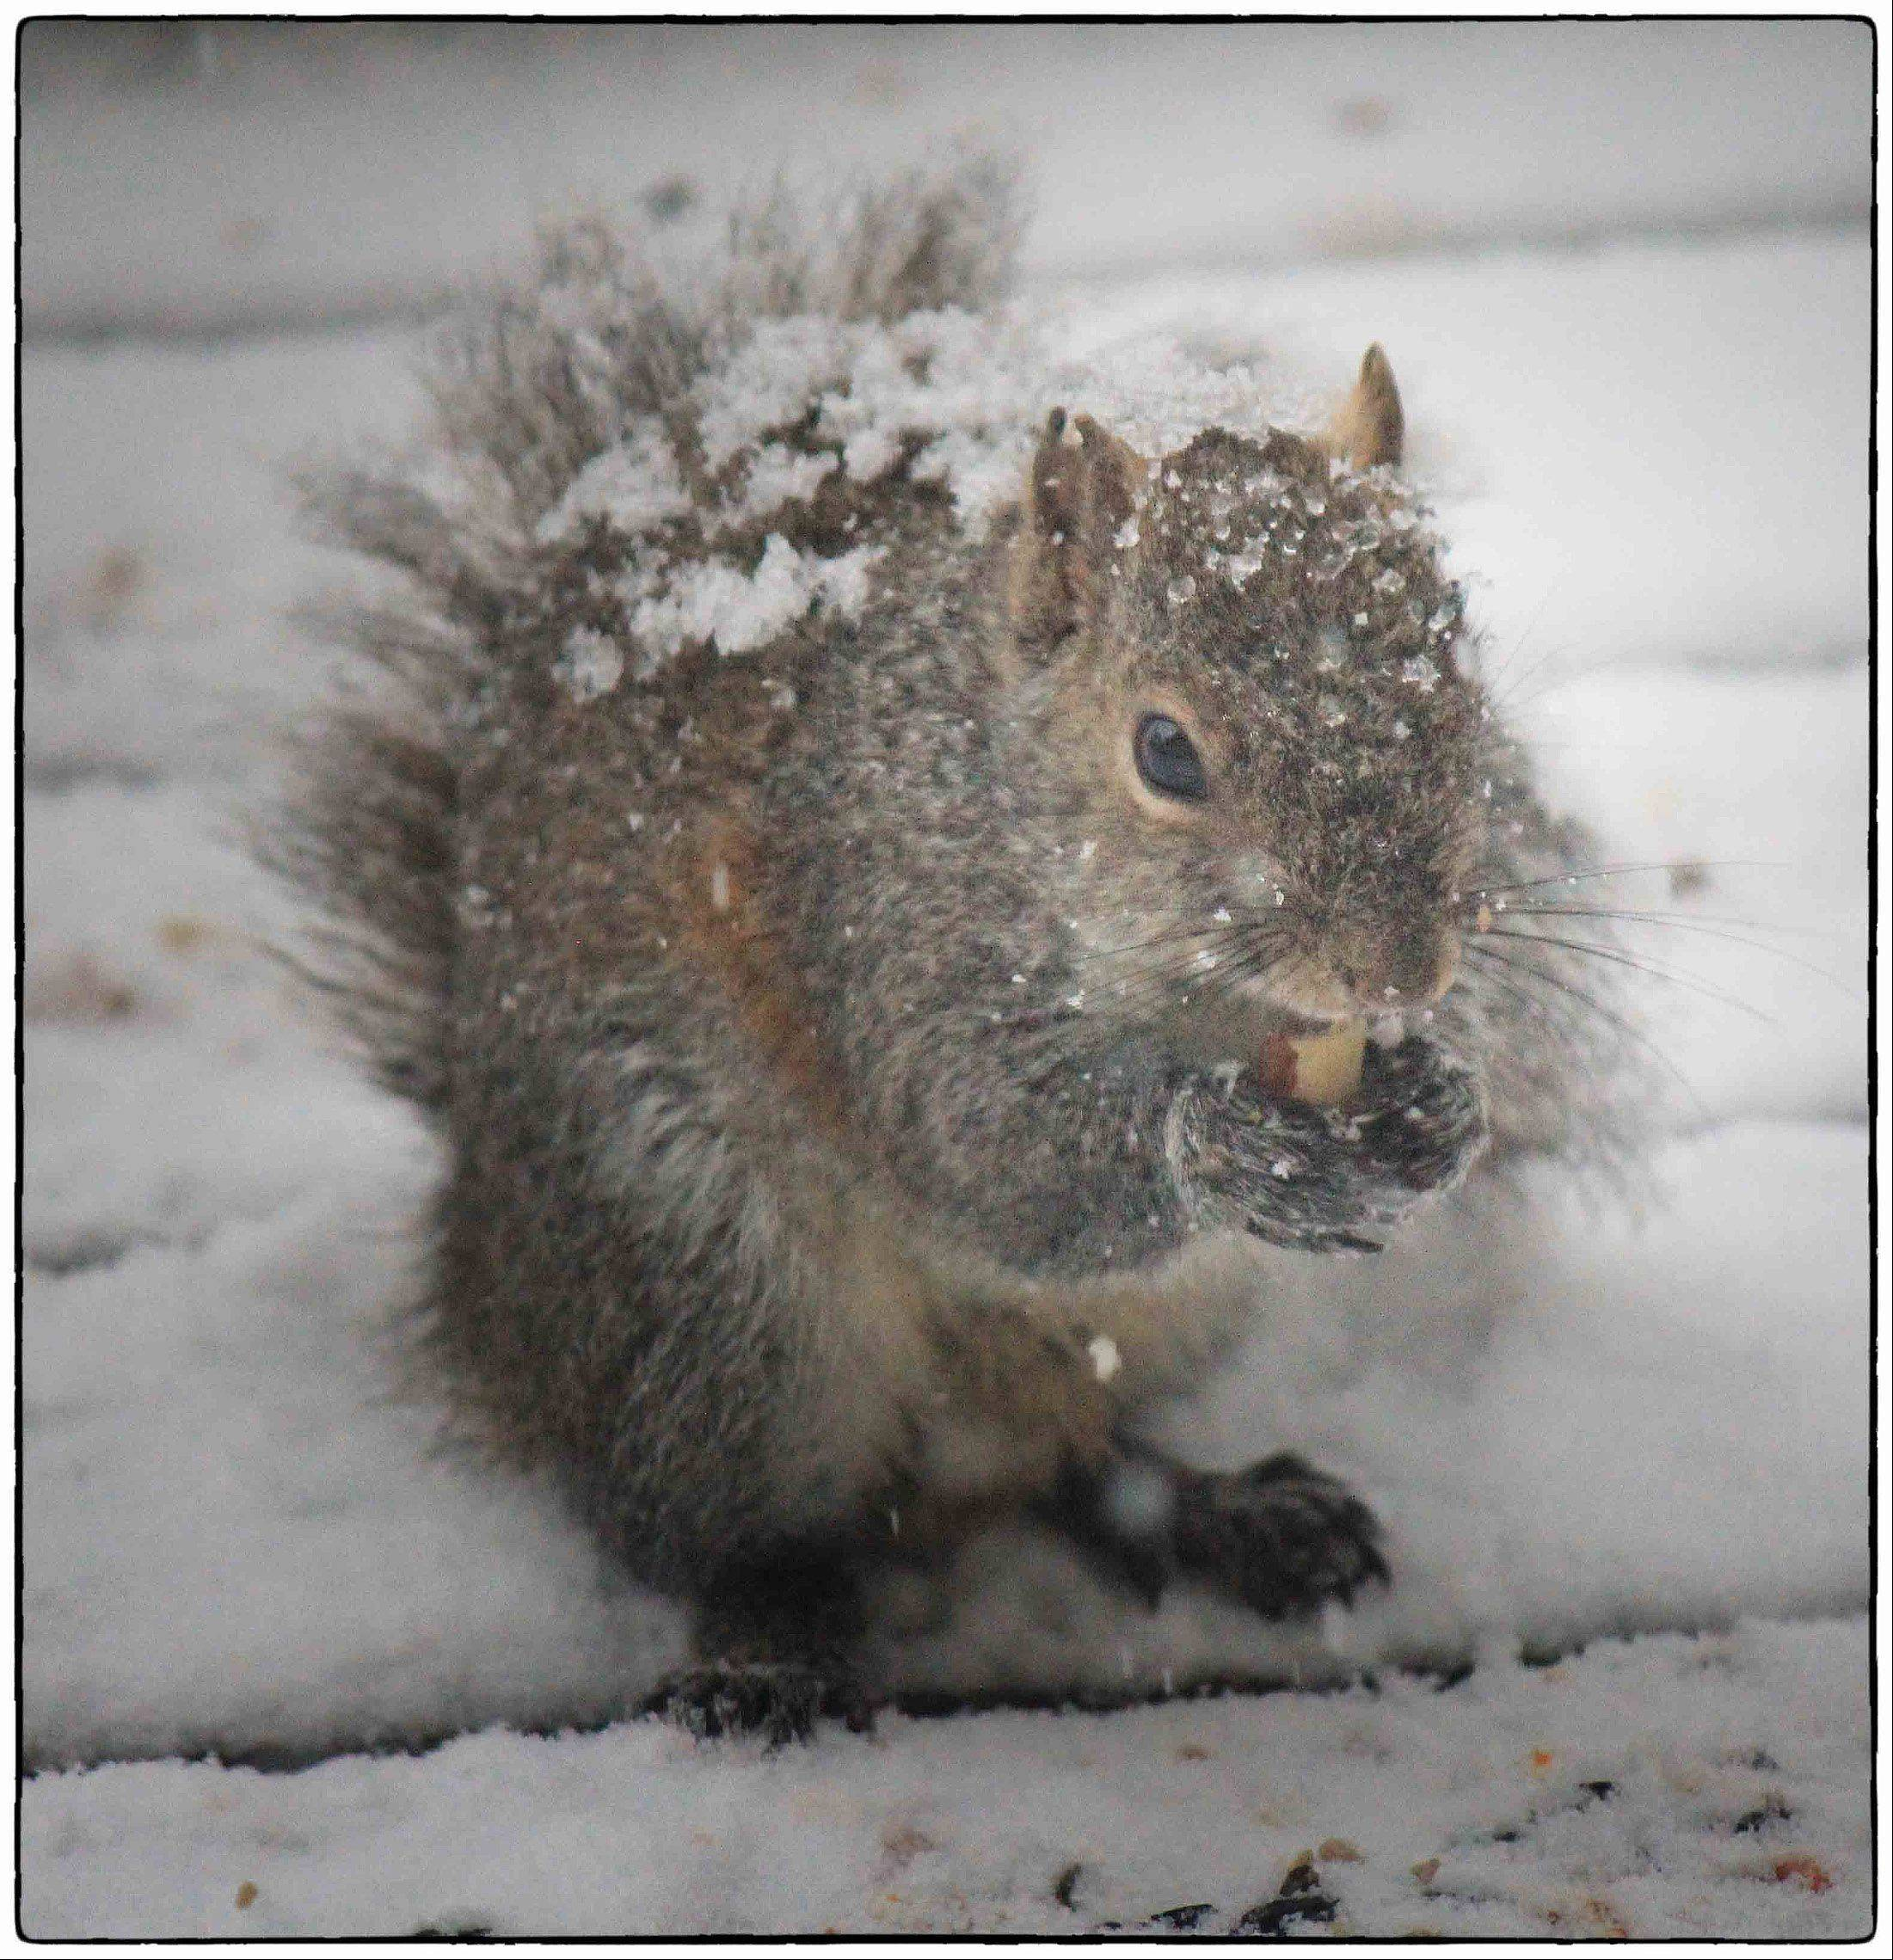 The snowfall on March 5th didn't keep the squirrels away!